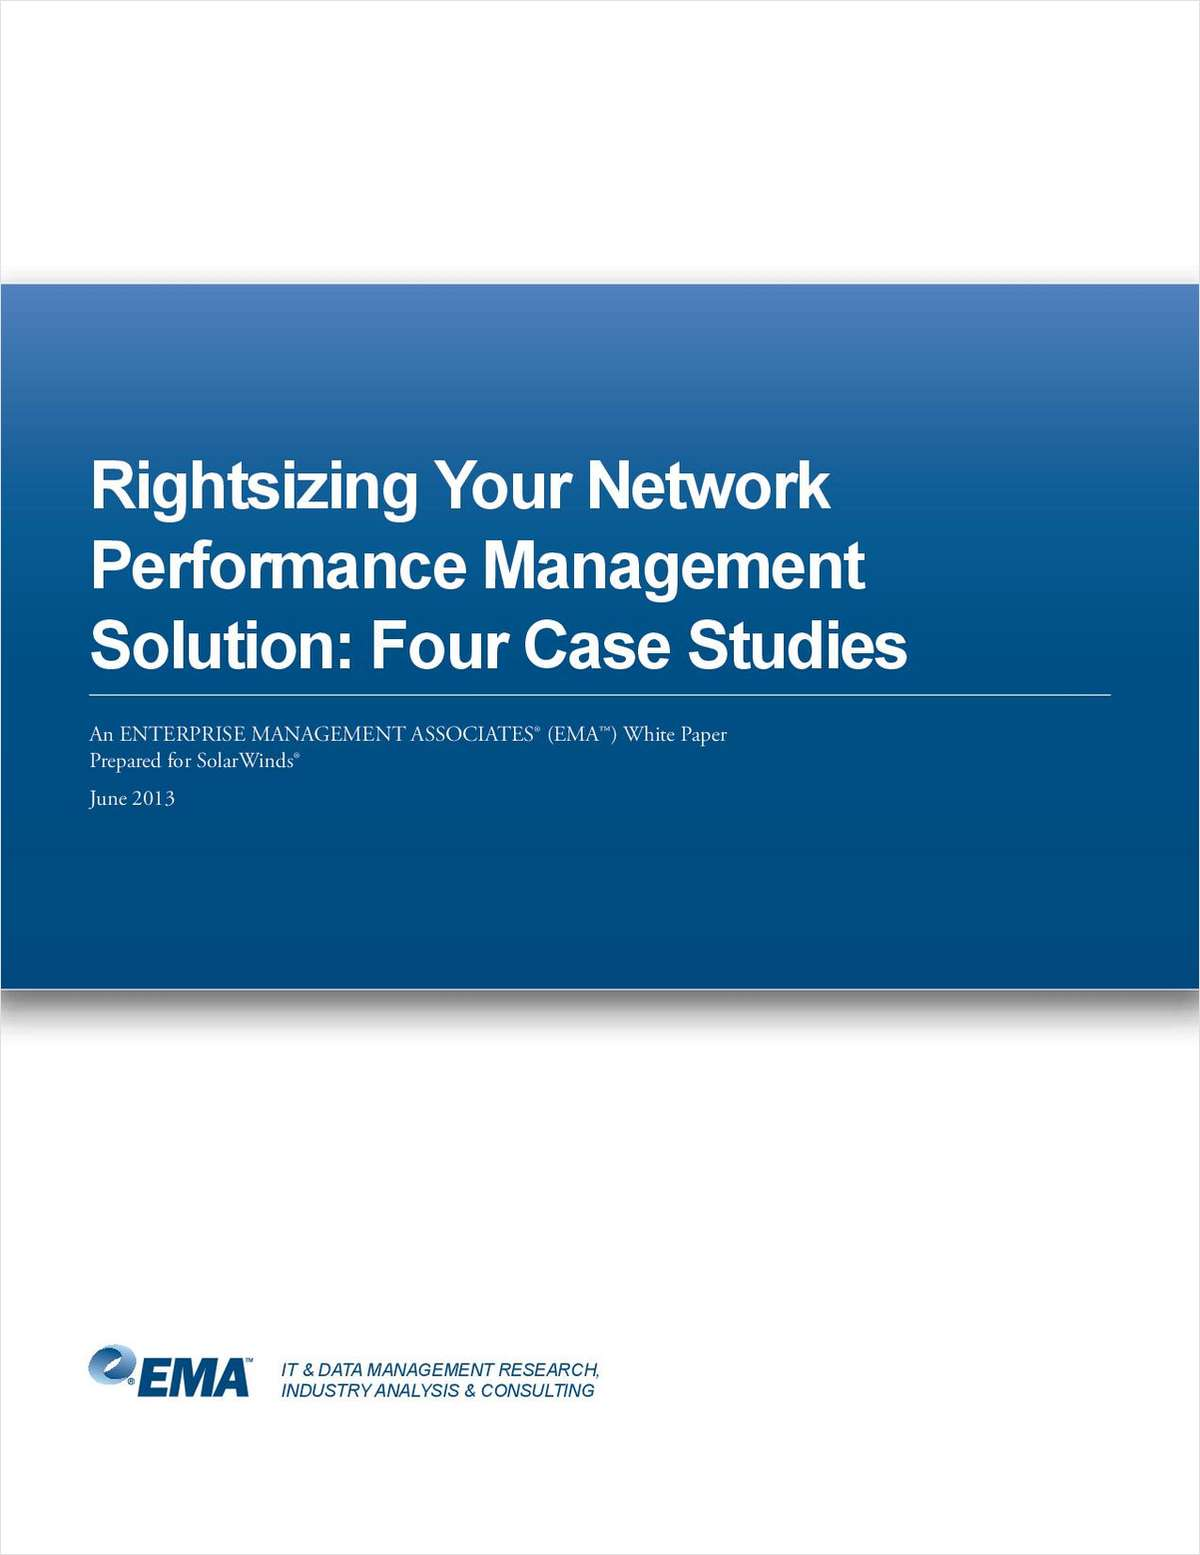 Rightsizing Your Network Performance Management Solution: Four Case Studies